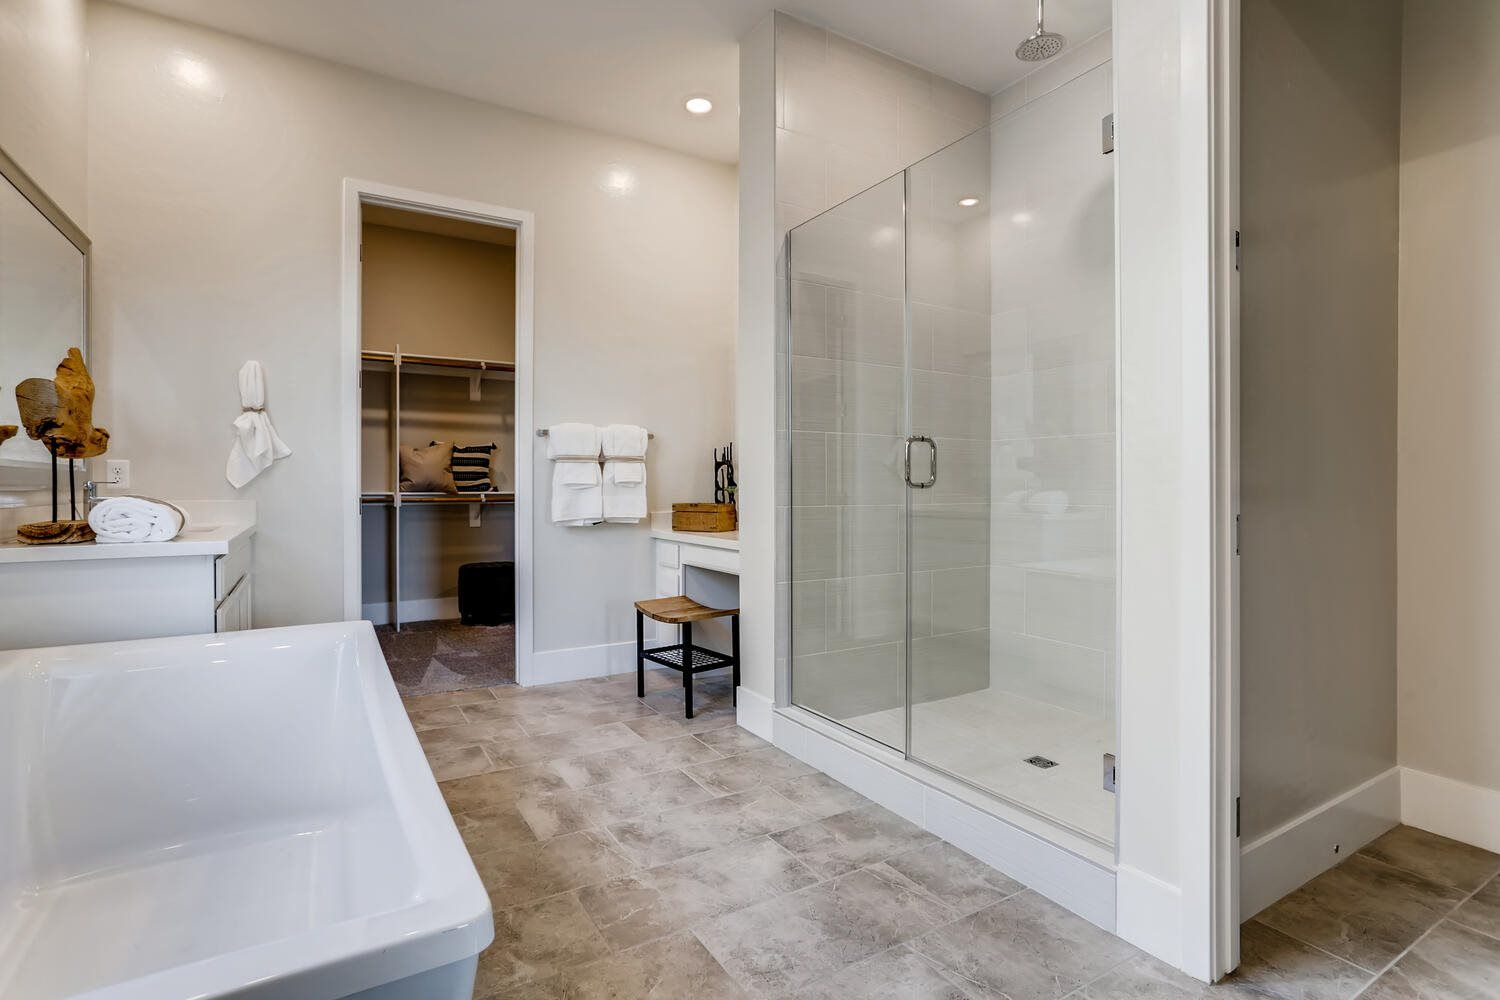 Bathroom featured in the Eleanor By Lennar in Las Vegas, NV